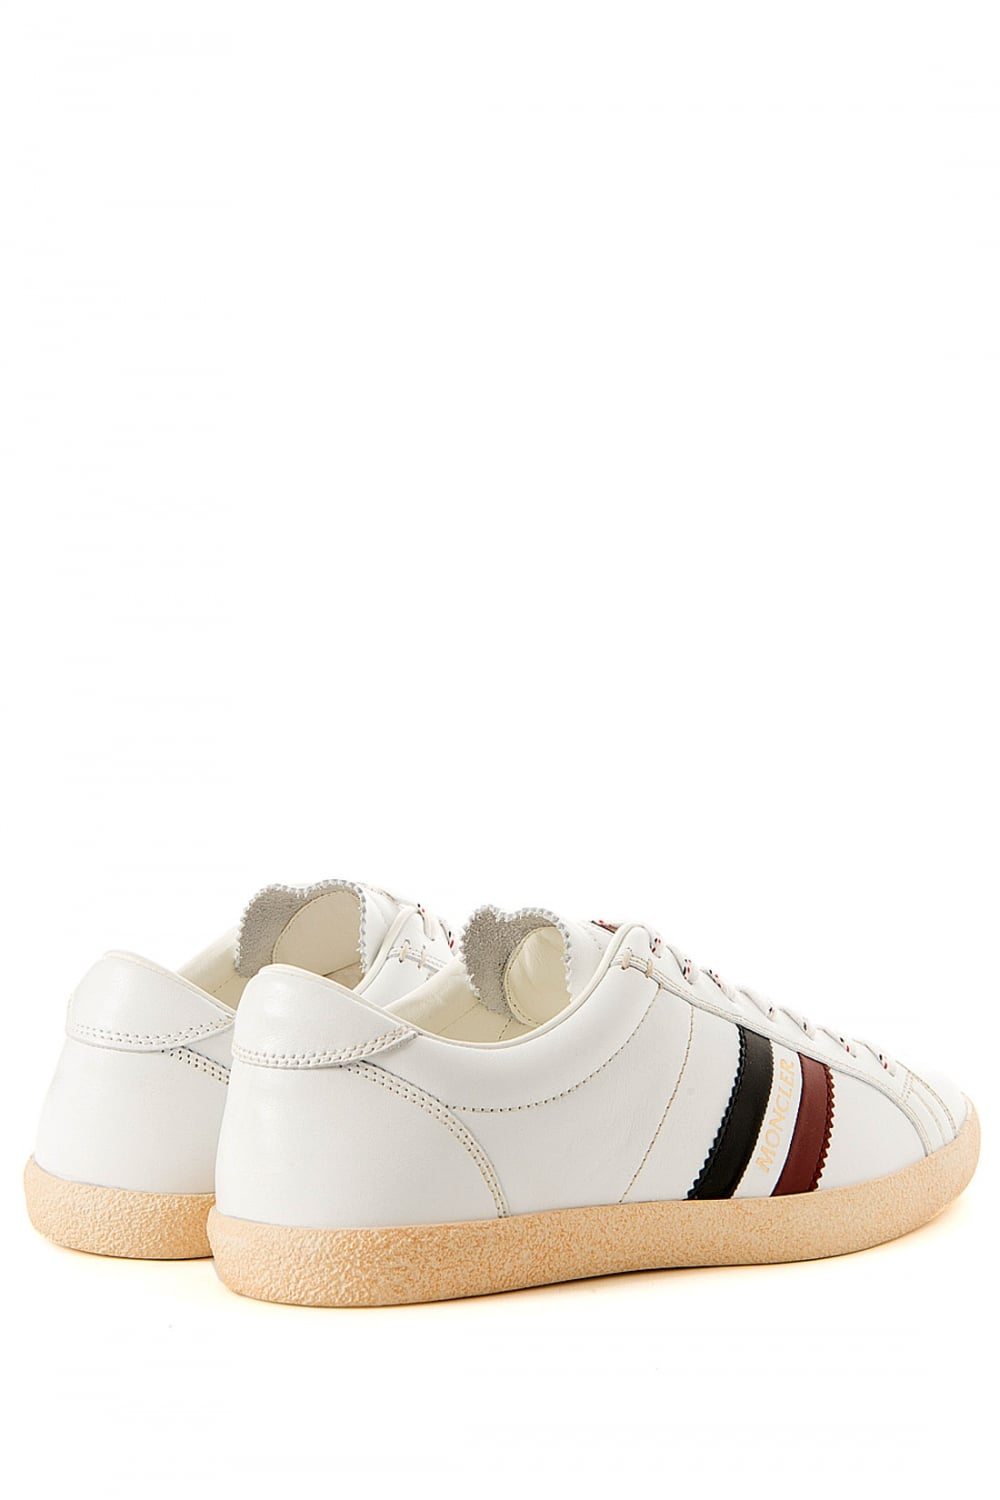 MONCLER Moncler Monaco White Leather Trainers - MONCLER from Circle Fashion UK